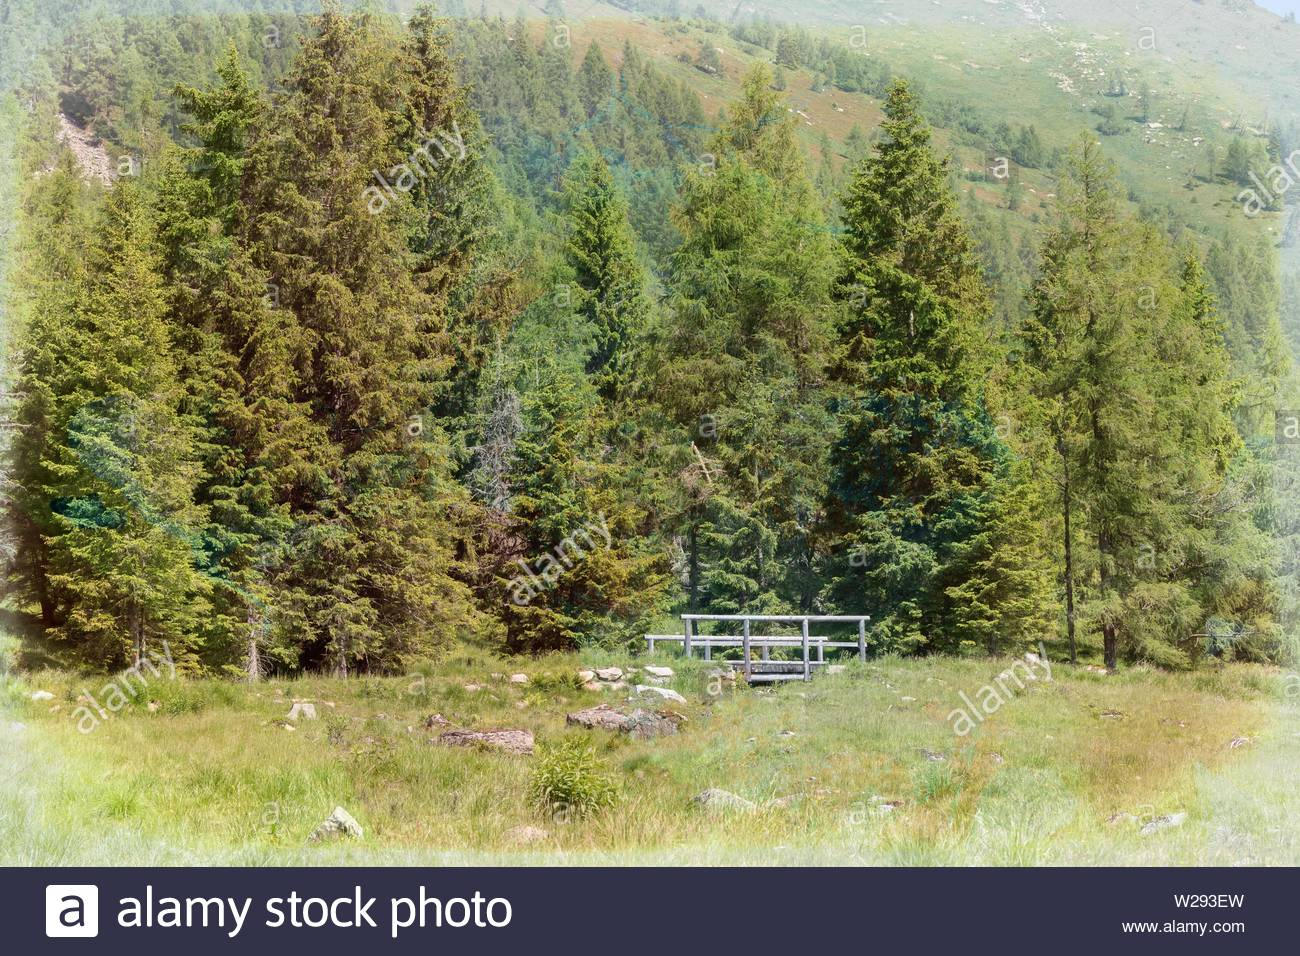 pine  tree in the forest - Stock Image